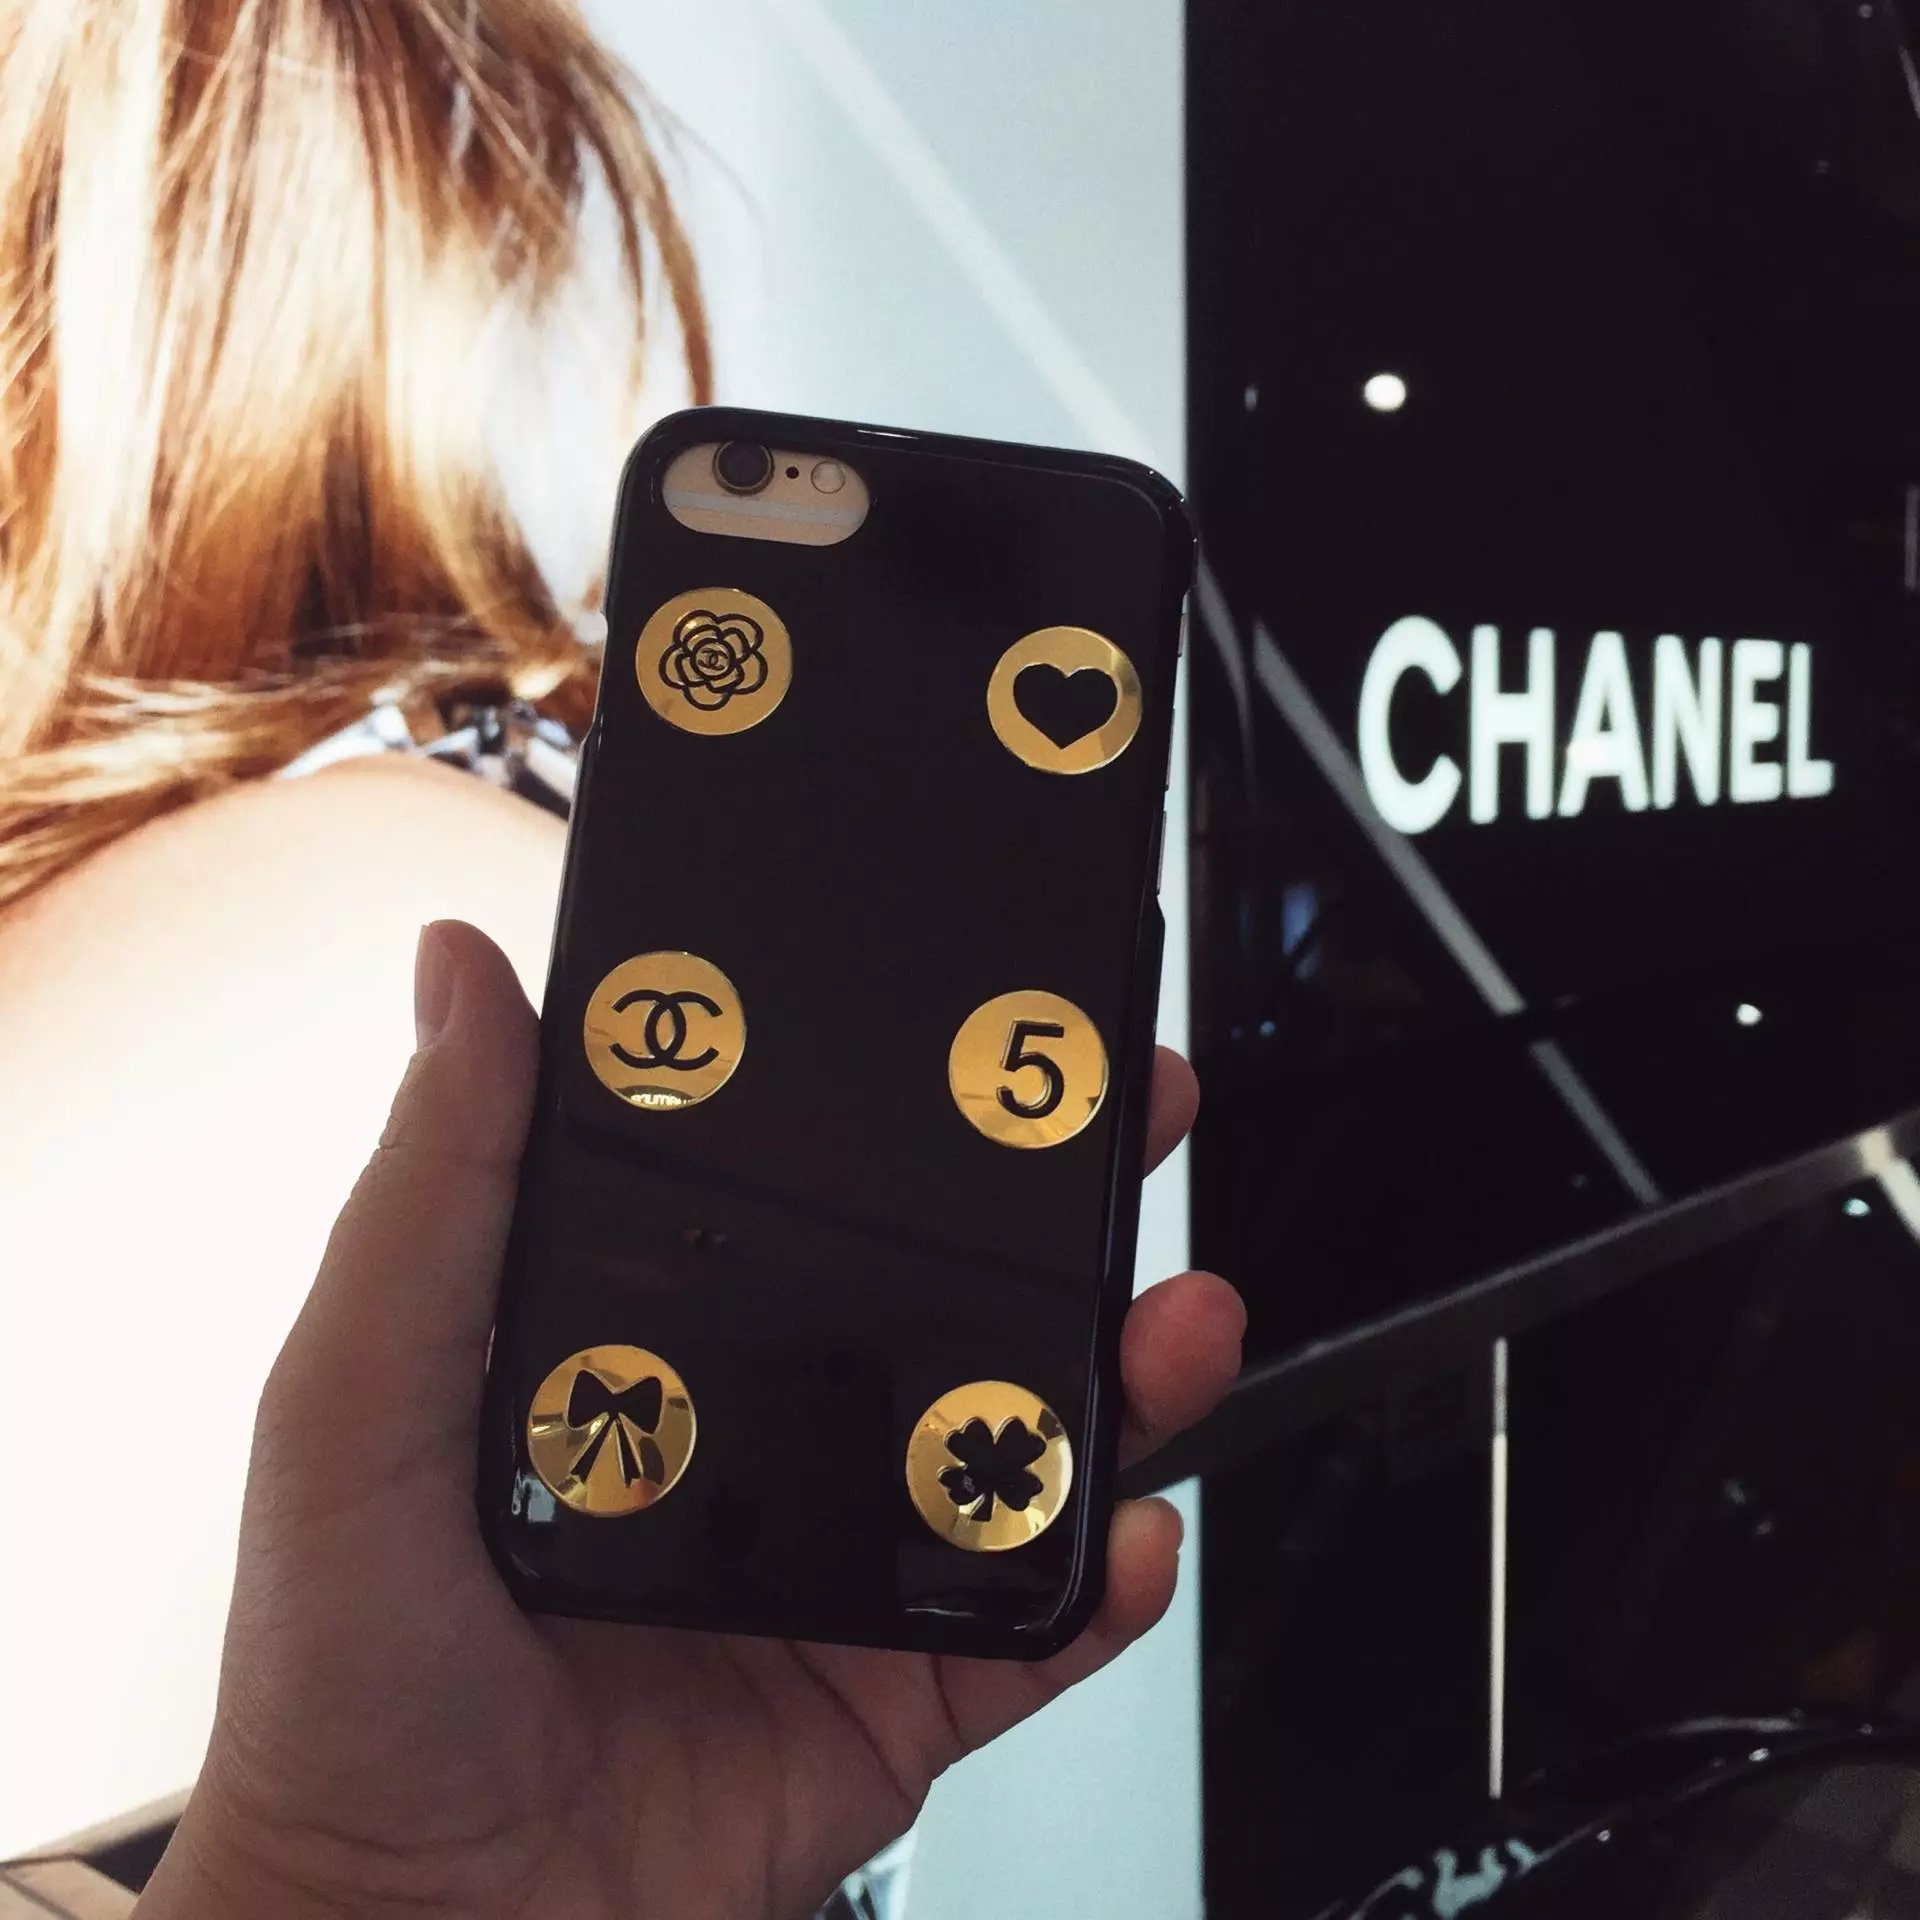 top rated iphone 6 cases iphone 6 cases for sale fashion iphone6 case buy iphone 6 case i phone six cell phone case creator iphone 6 6.6 inch iphone case personalized custom phone cases iphone 6